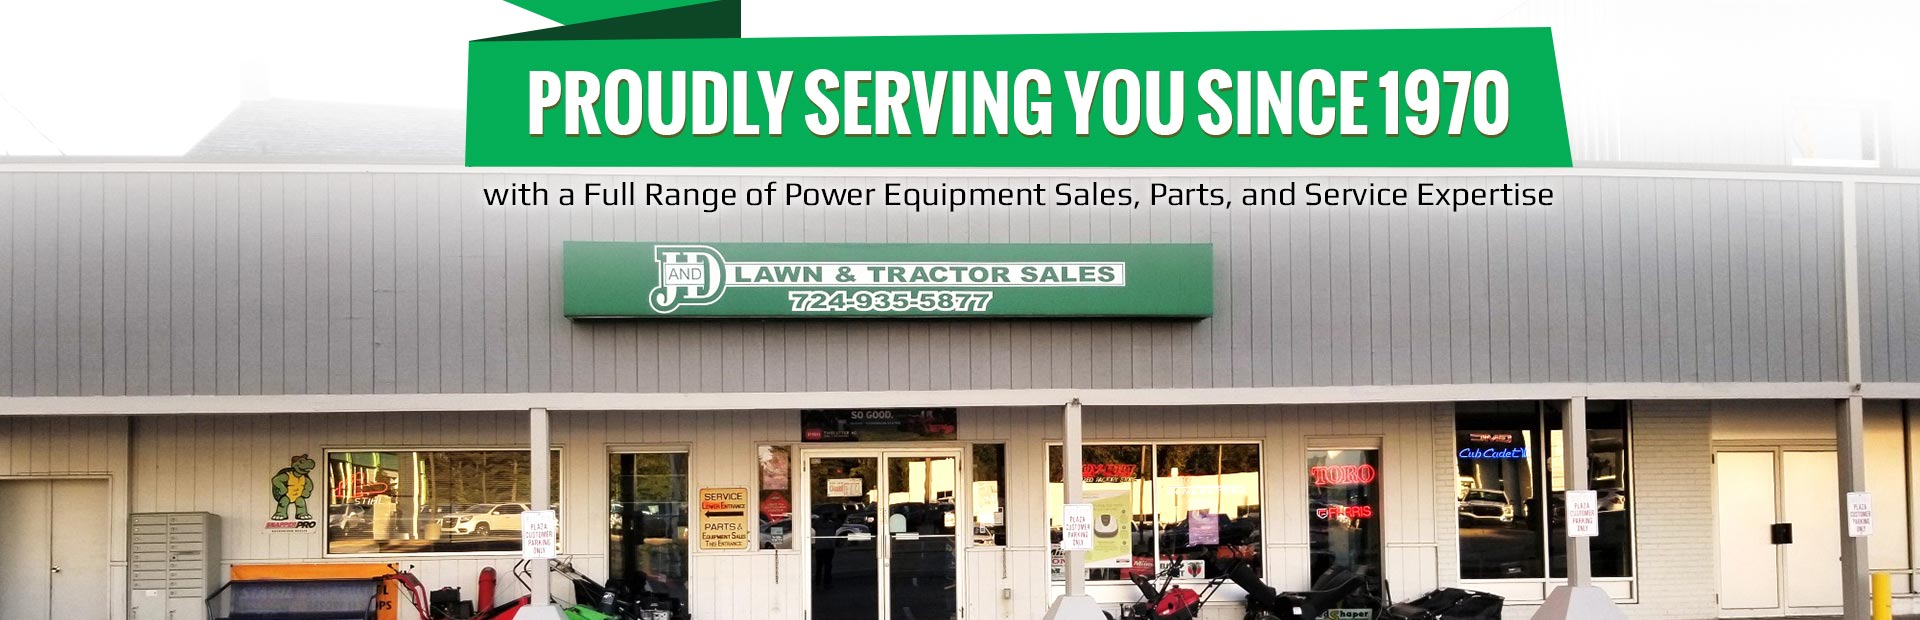 J and D Lawn & Tractor Sales: Proudly serving you since 1970 with a full range of power equipment sa